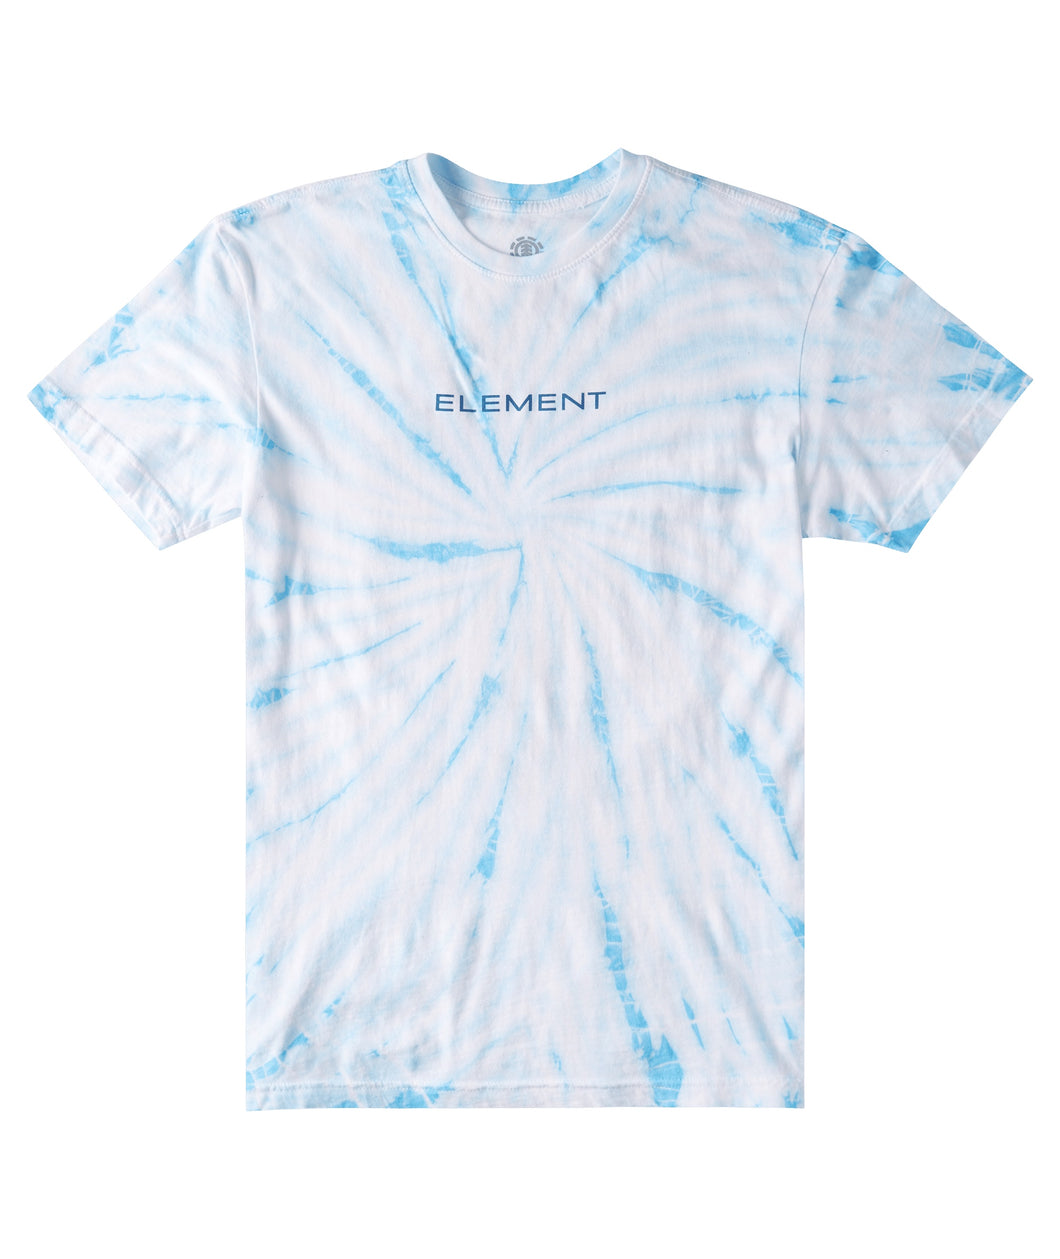 ELEMENT LOGEL TIE-DYE